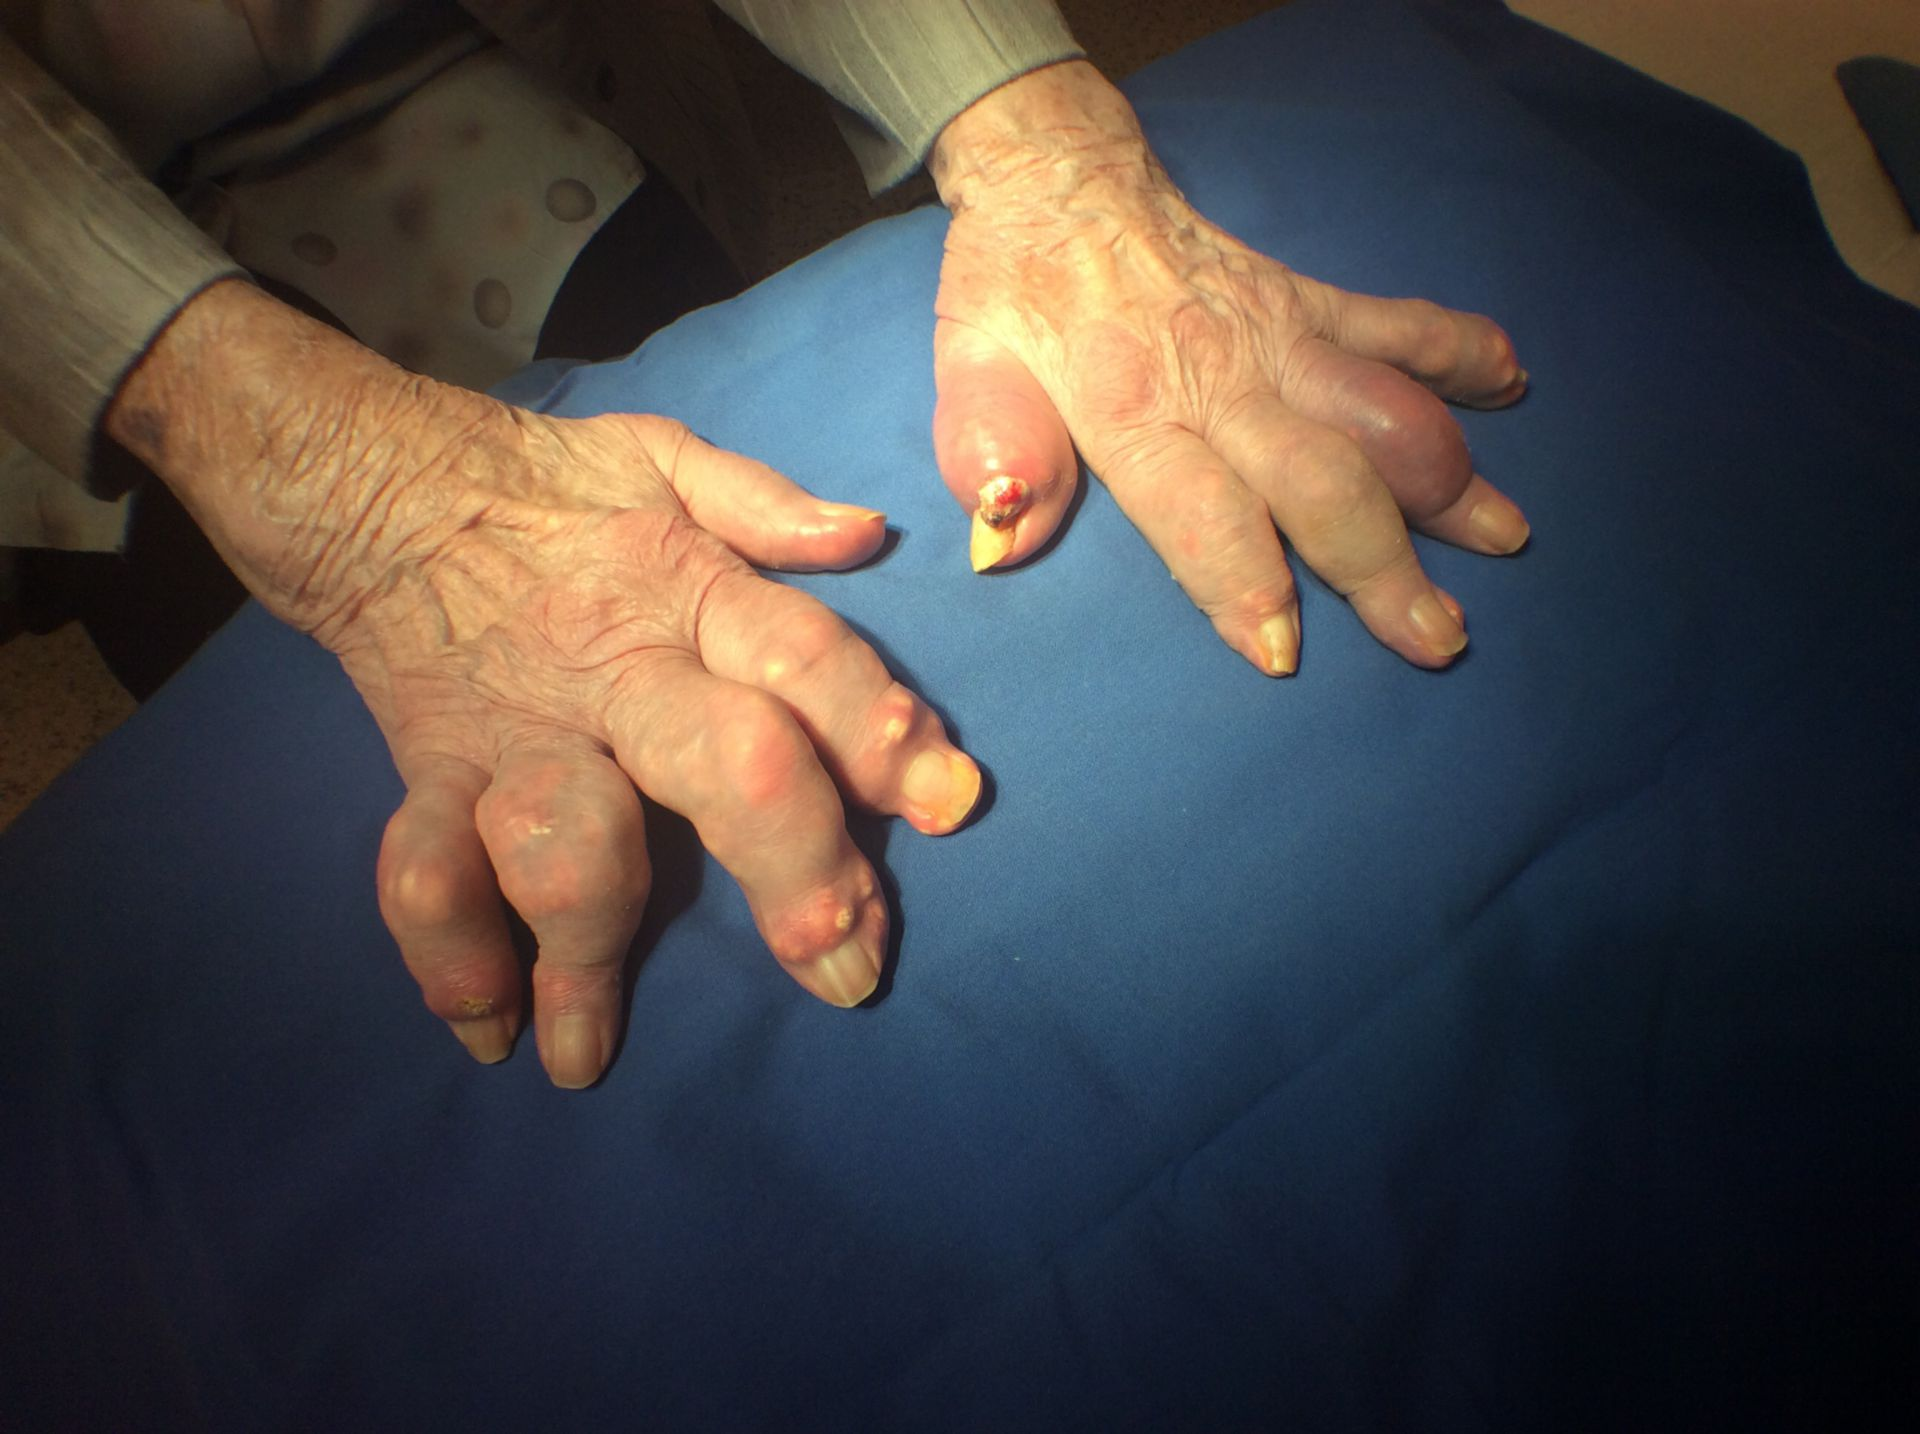 Gout in fingers